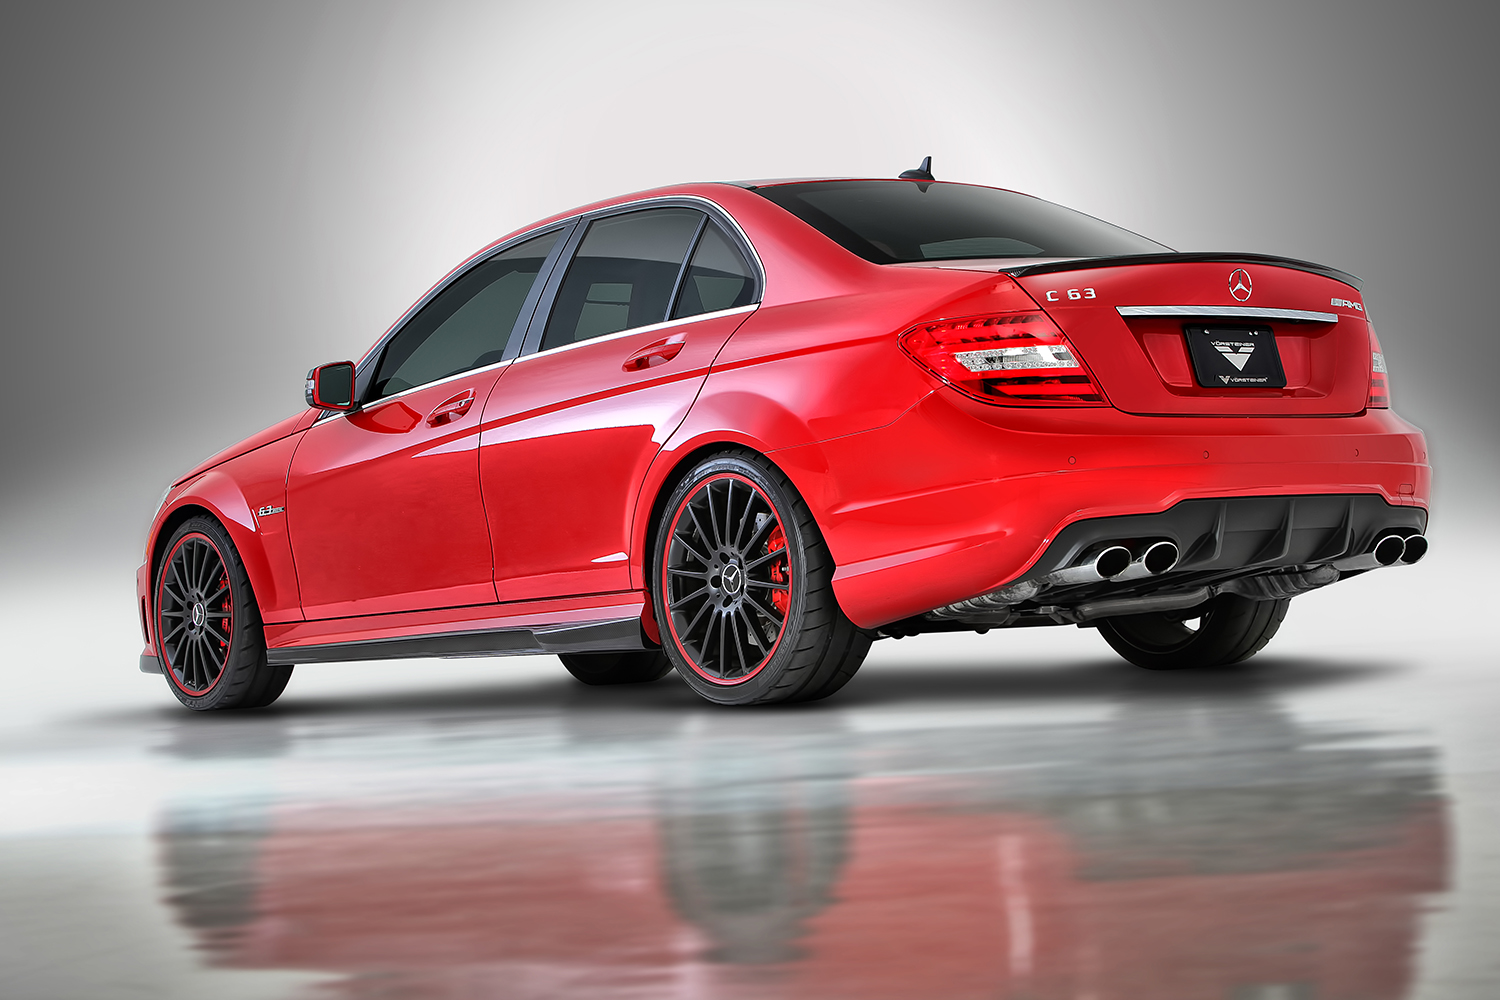 2012 mercedes benz c63 amg sedan by vorsteiner gtspirit - 2012 mercedes c63 amg coupe ...